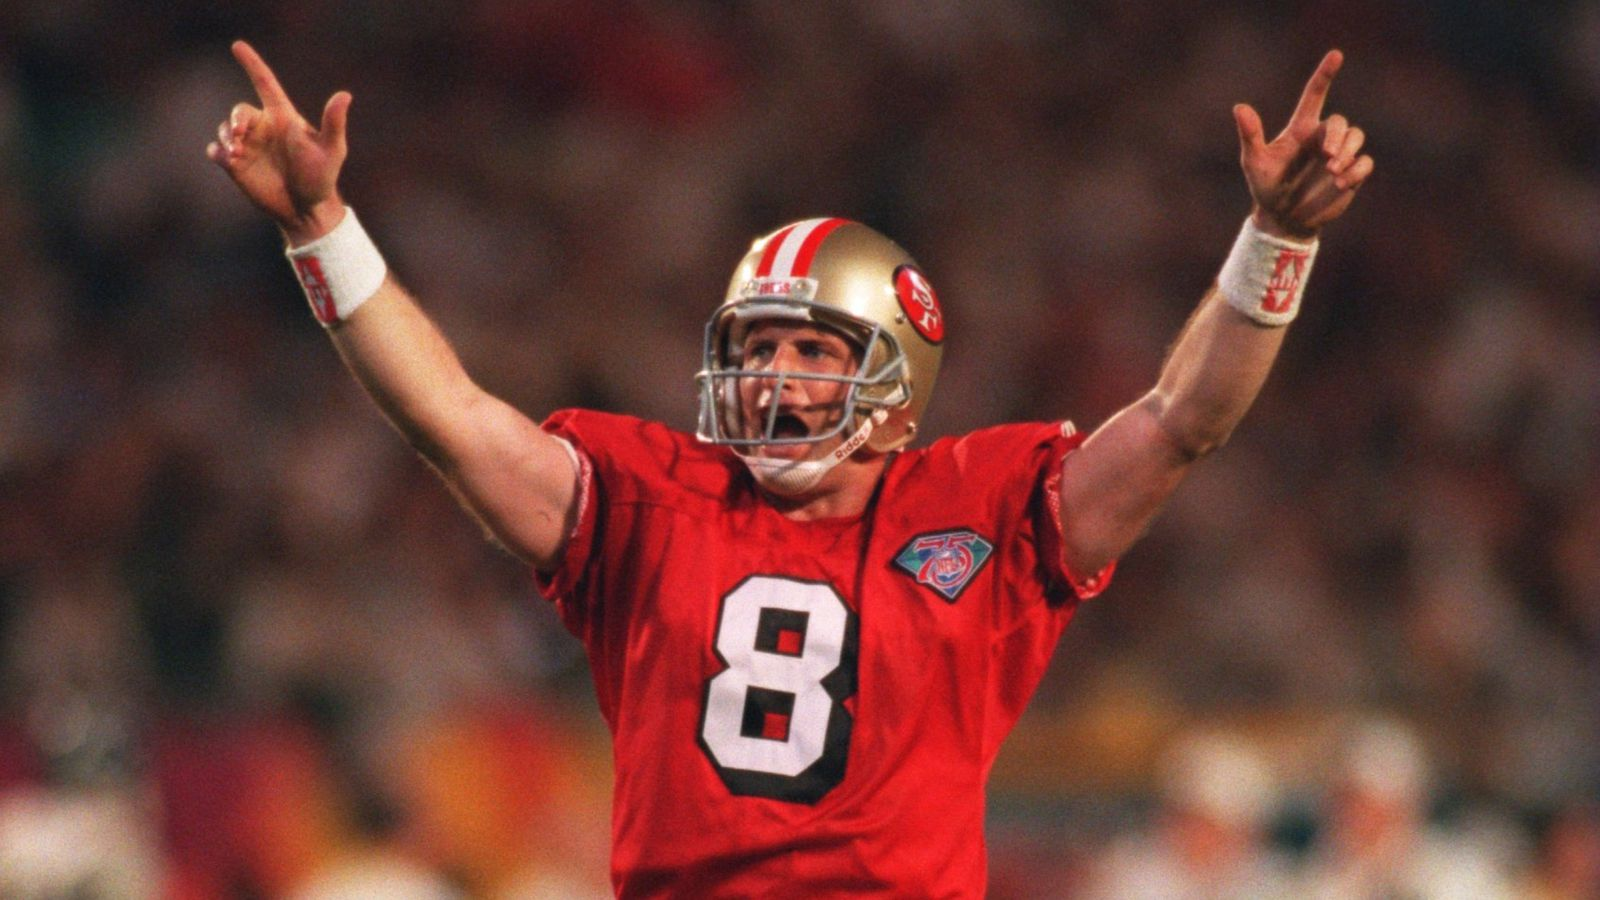 Threesome pics picture steve young ers quarterback